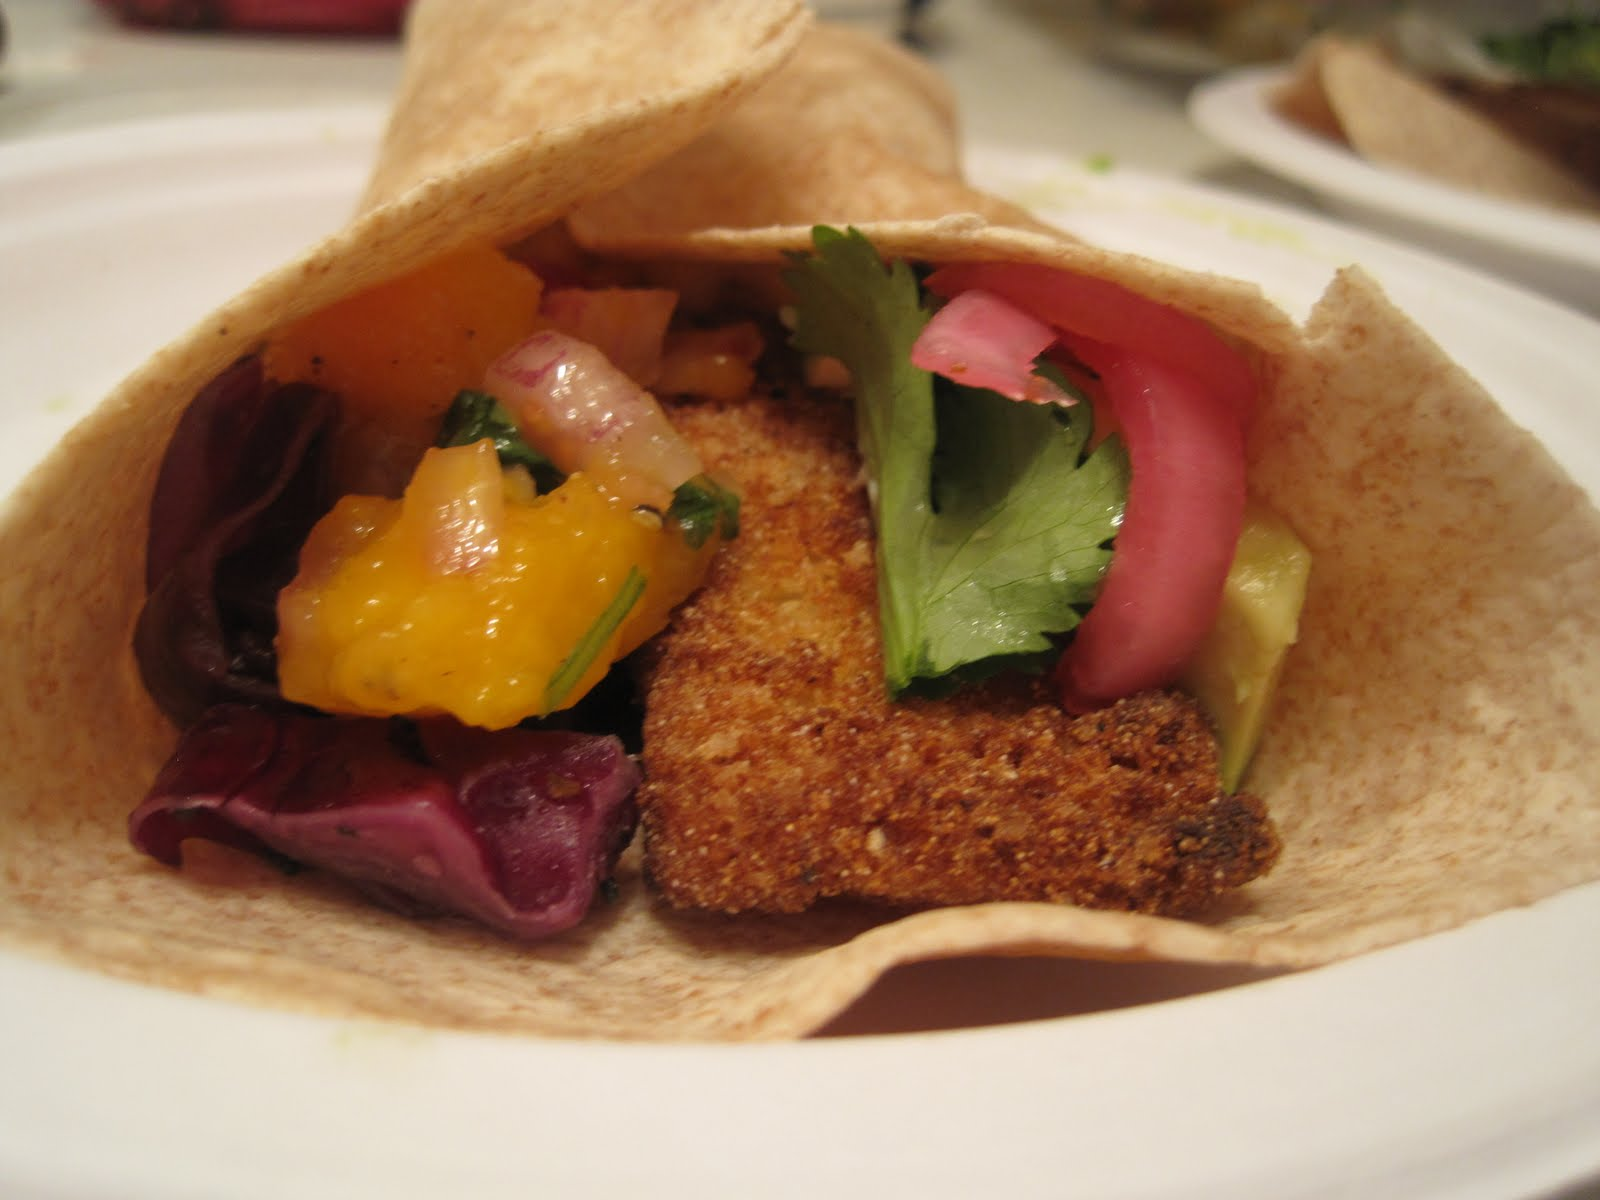 Corcoran street kitchen fried fish tacos for Fried fish tacos recipe